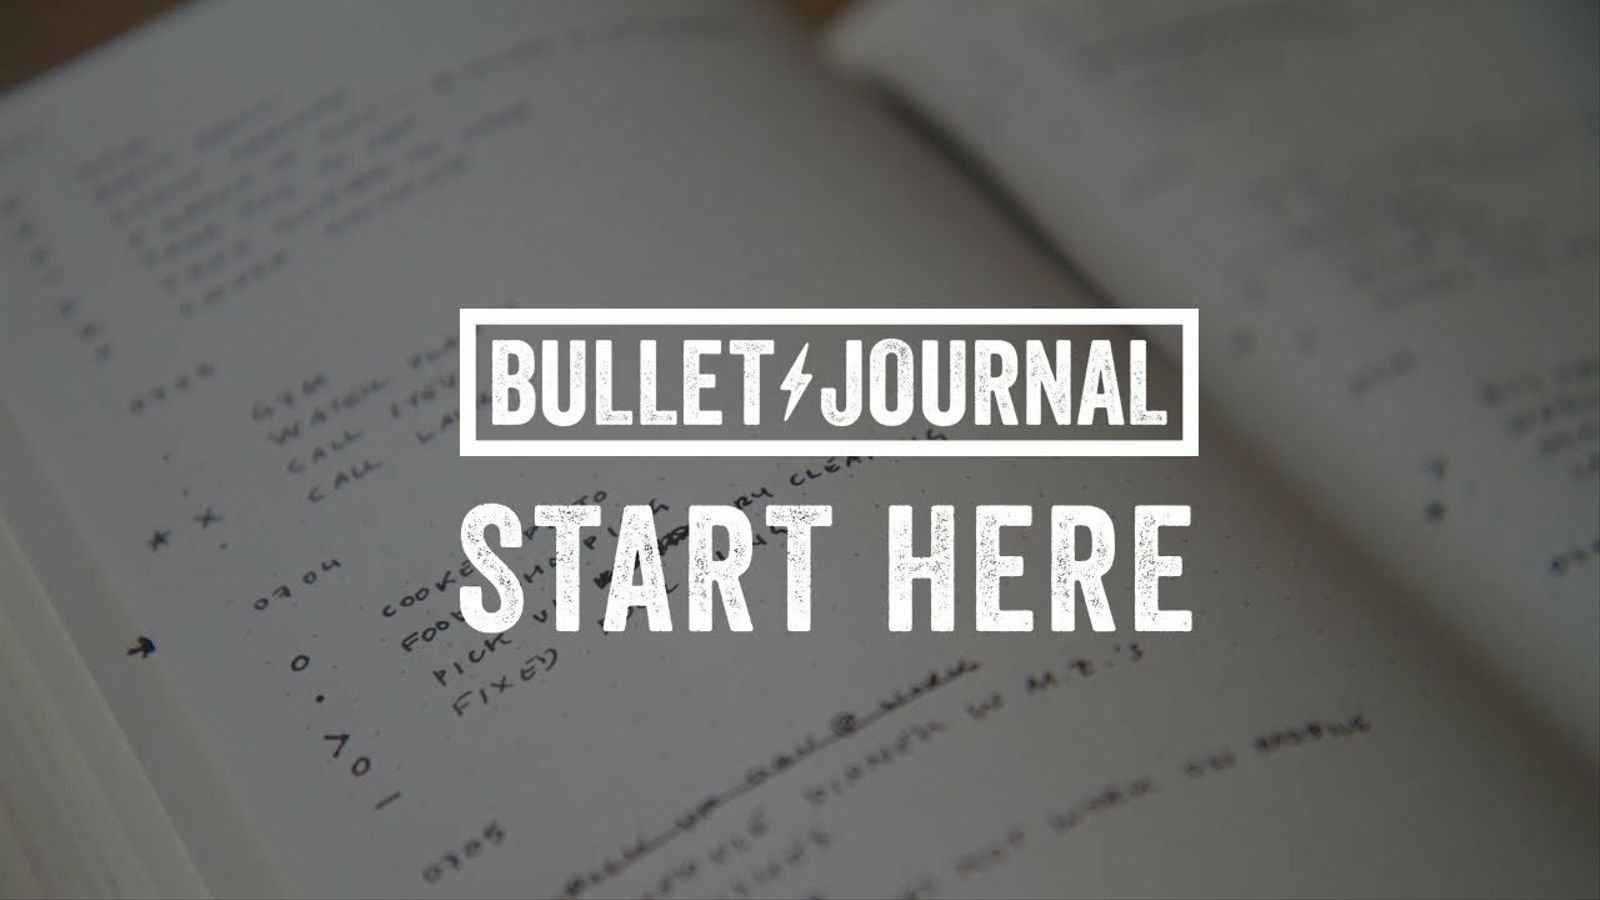 Com fer una 'bullet journal'